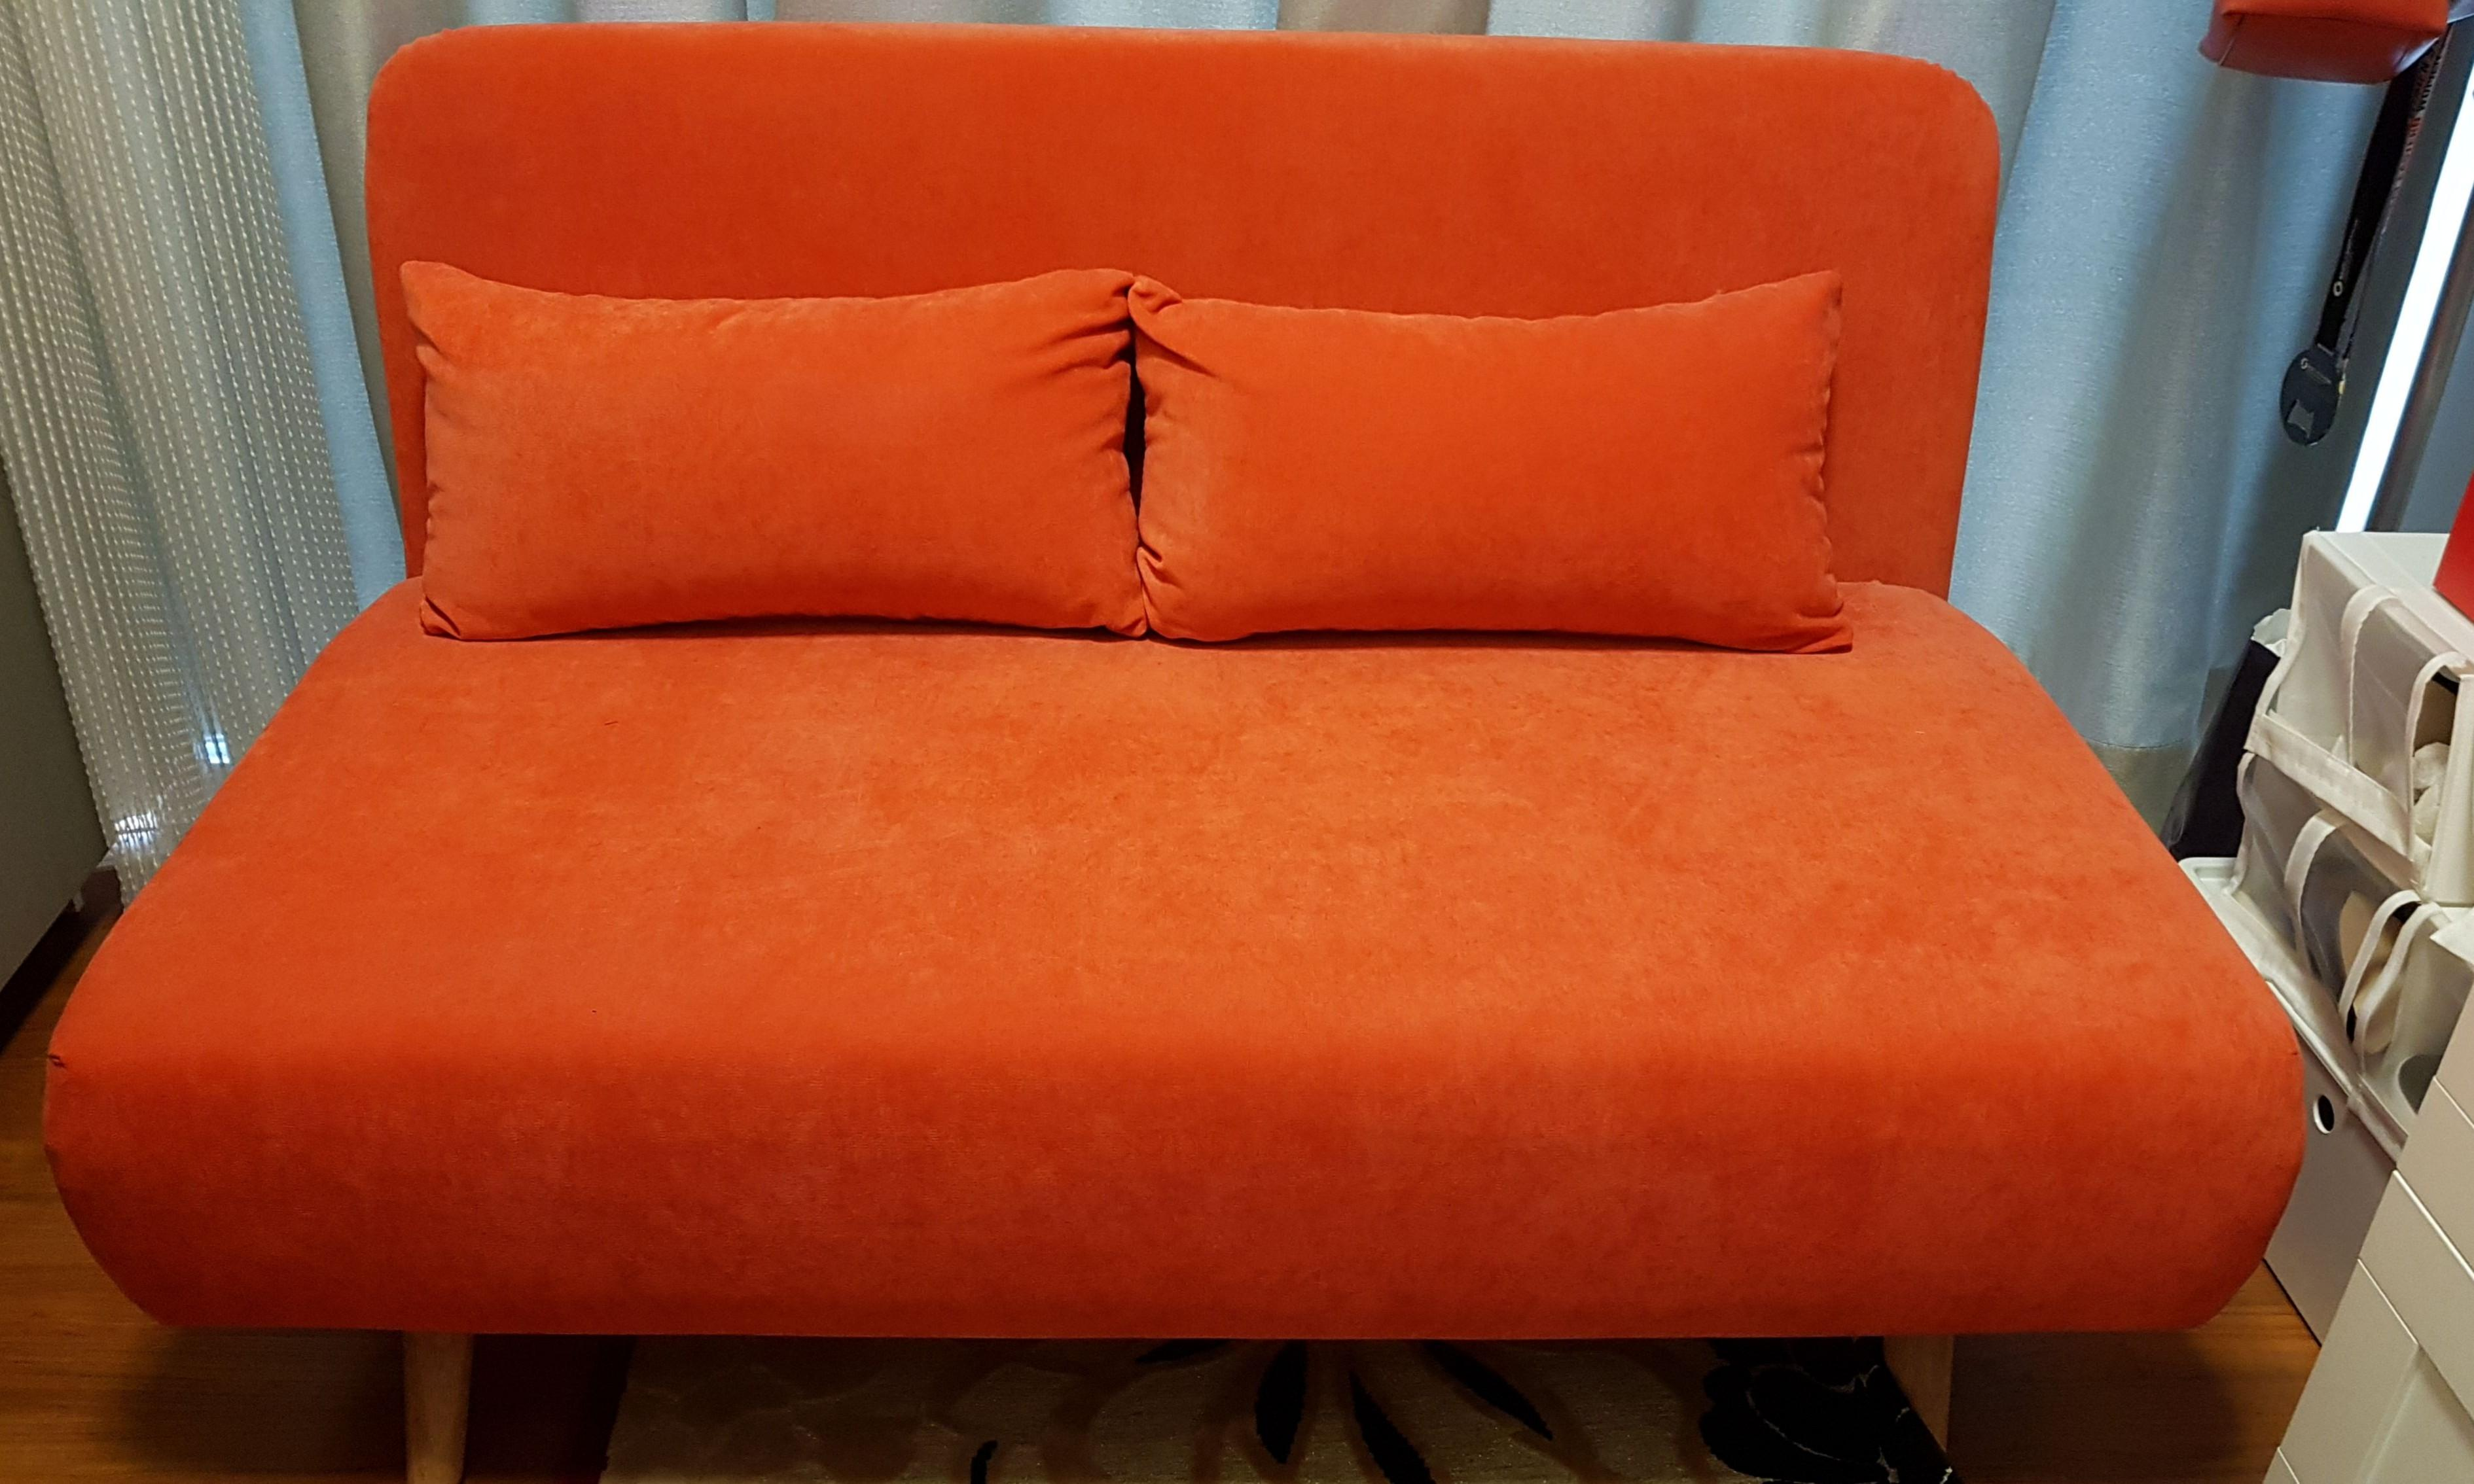 Preloved sofa bed in suede fabric